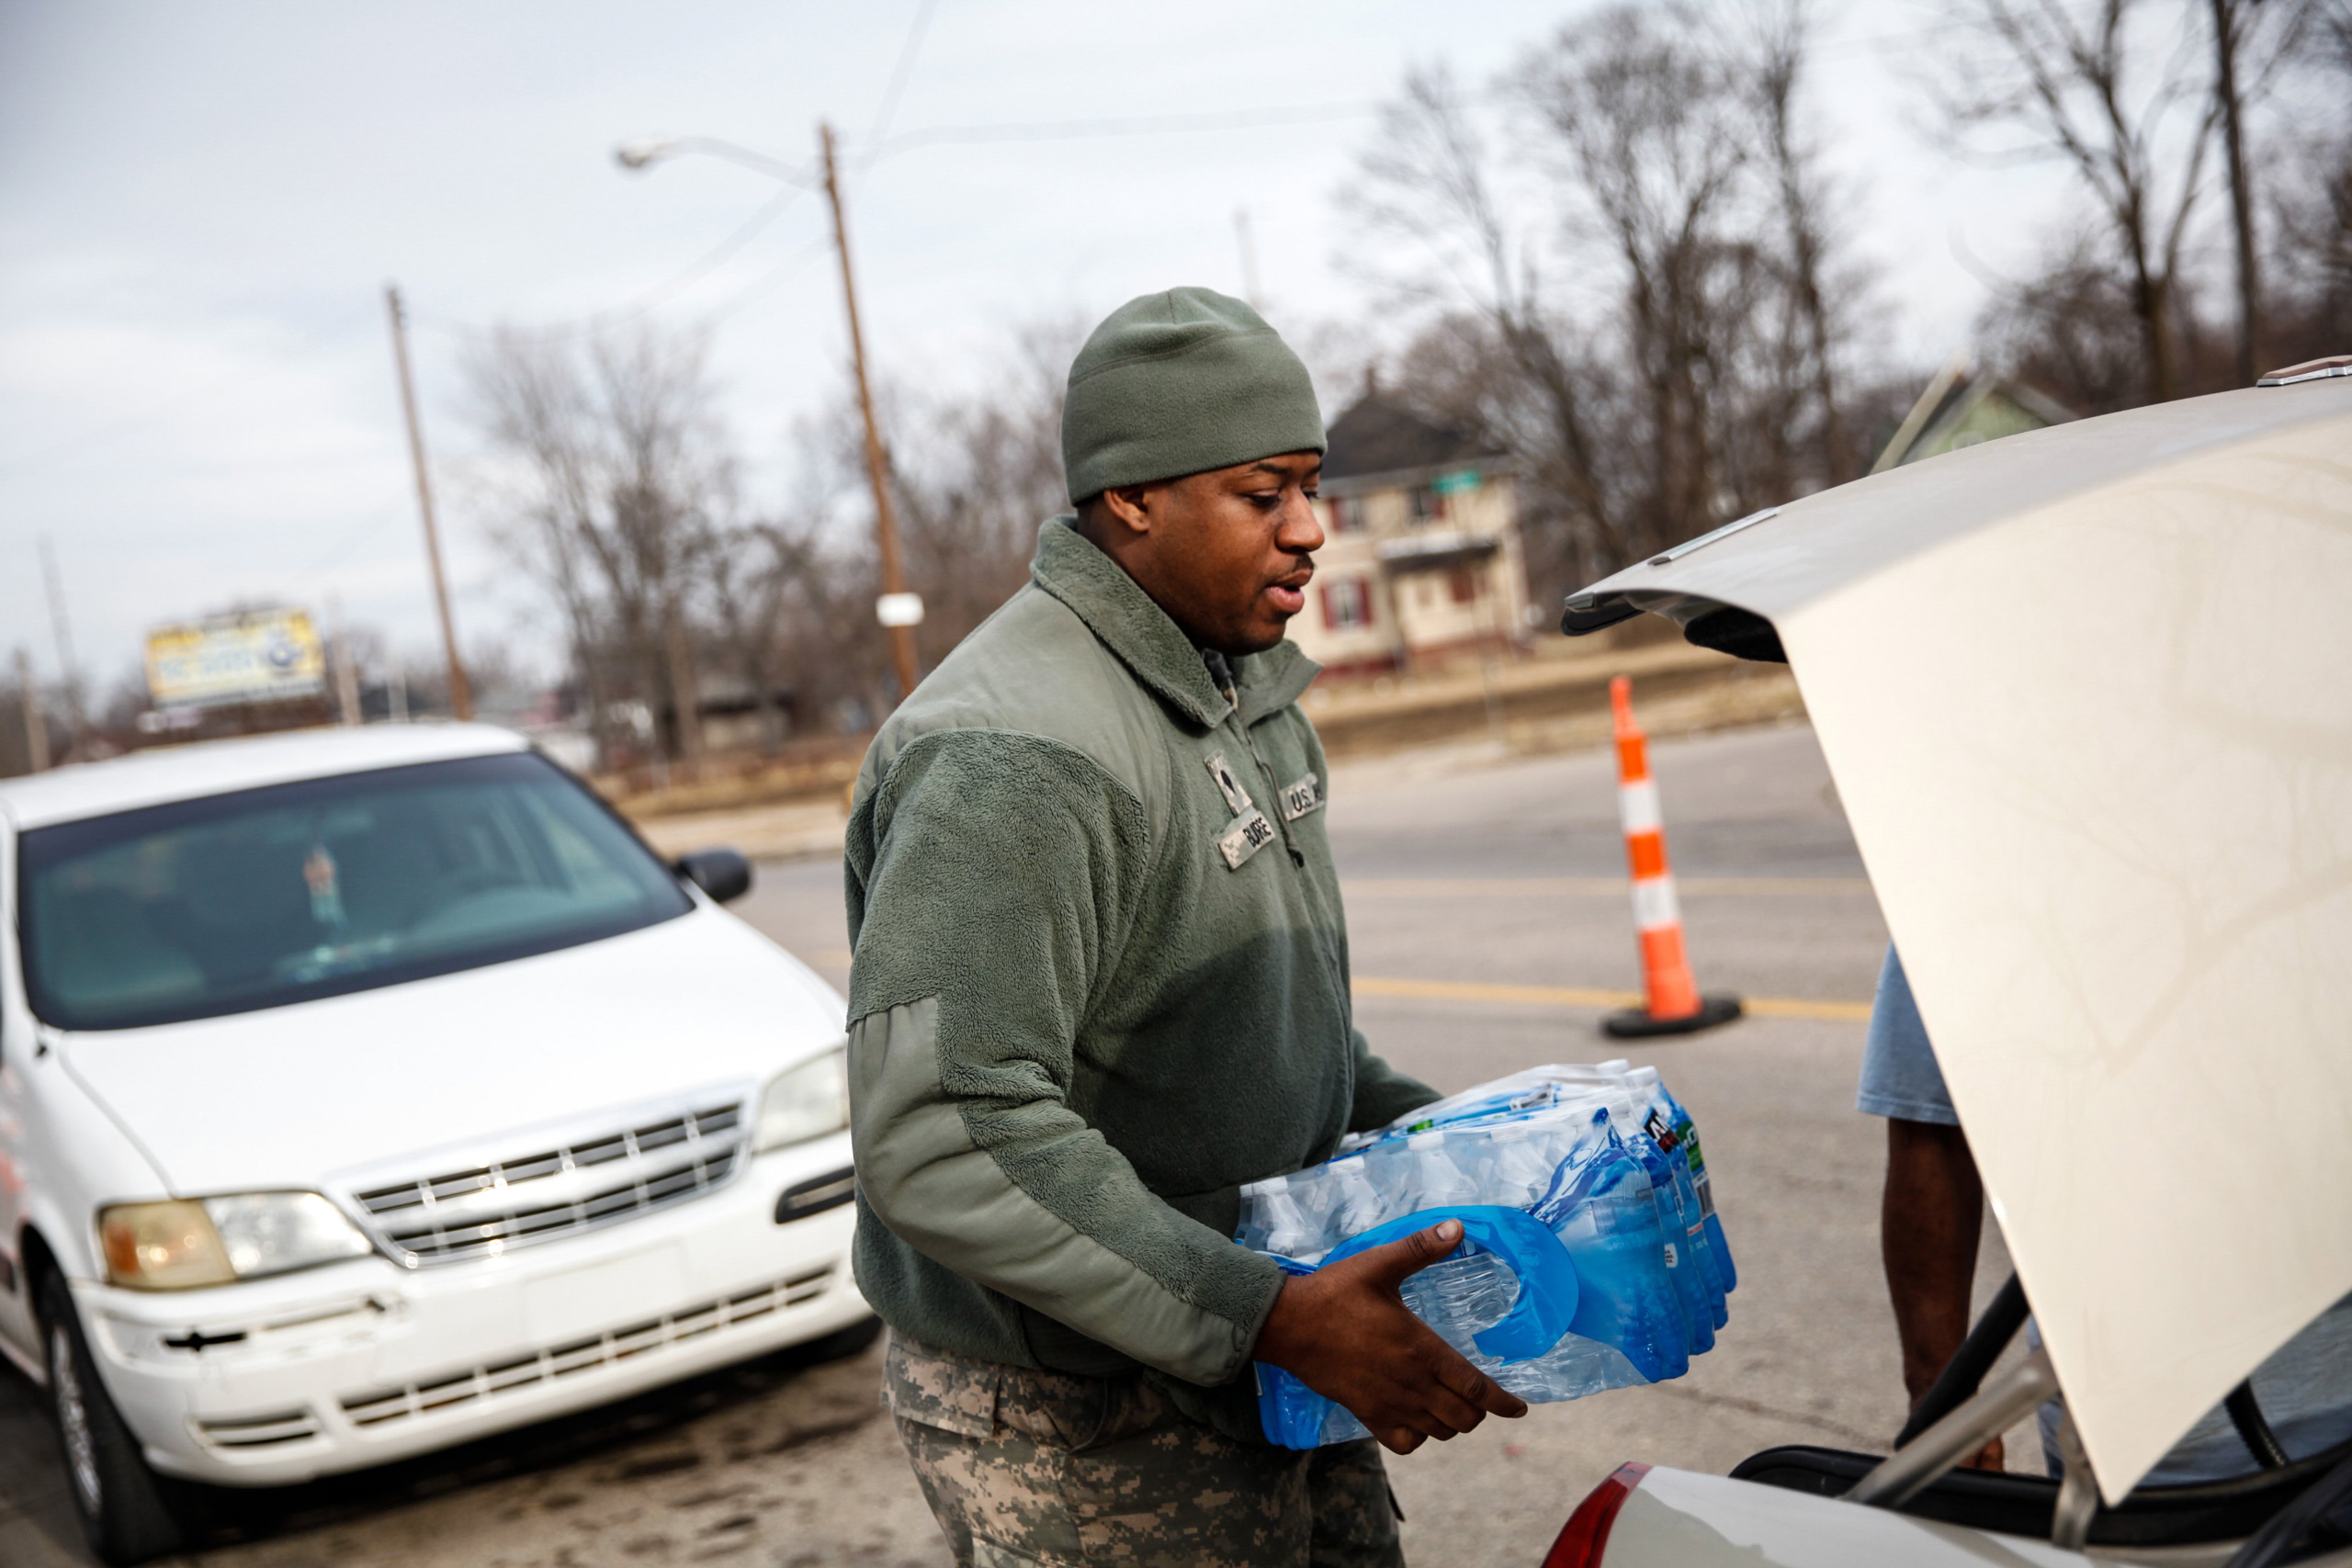 Army National Guard Spc. Terence Burse carries bottled water out to the car for a resident in Flint, Mich., on Feb. 7, 2016.